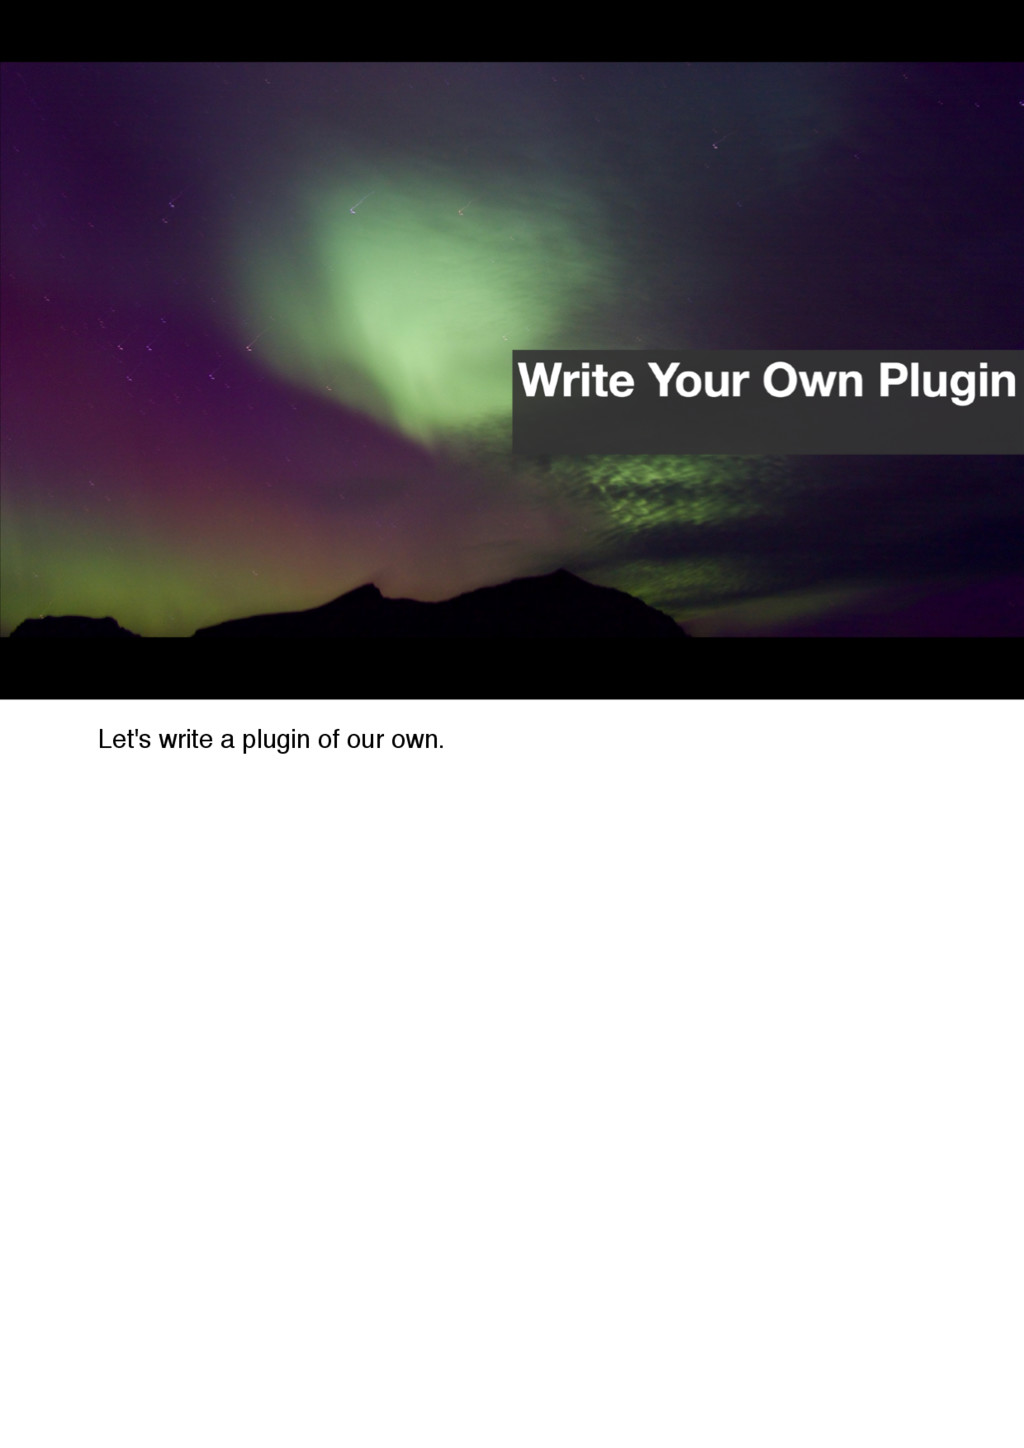 Let's write a plugin of our own.